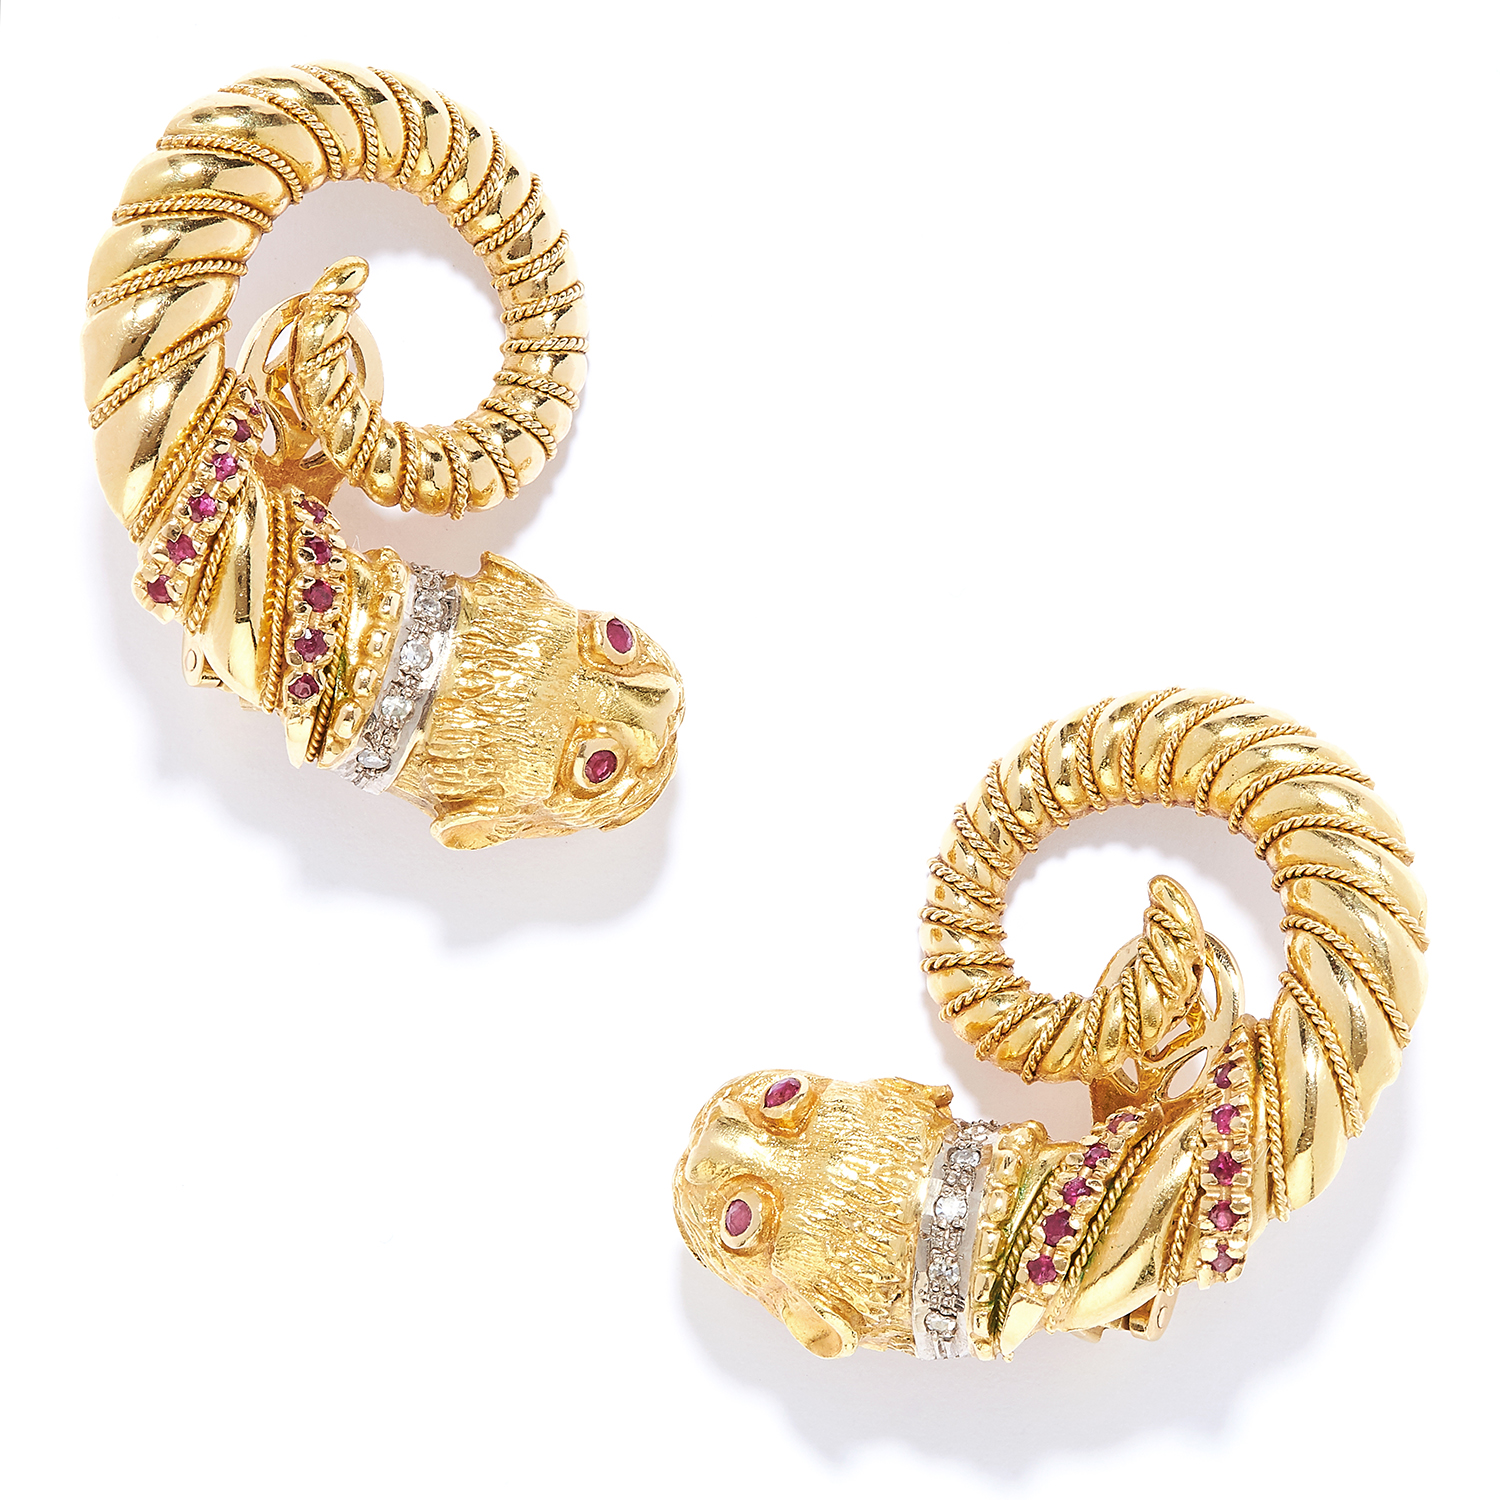 RUBY AND DIAMOND LION CLIP EARRINGS, LALAOUNIS in 18ct yellow gold, in Etruscan revival style,